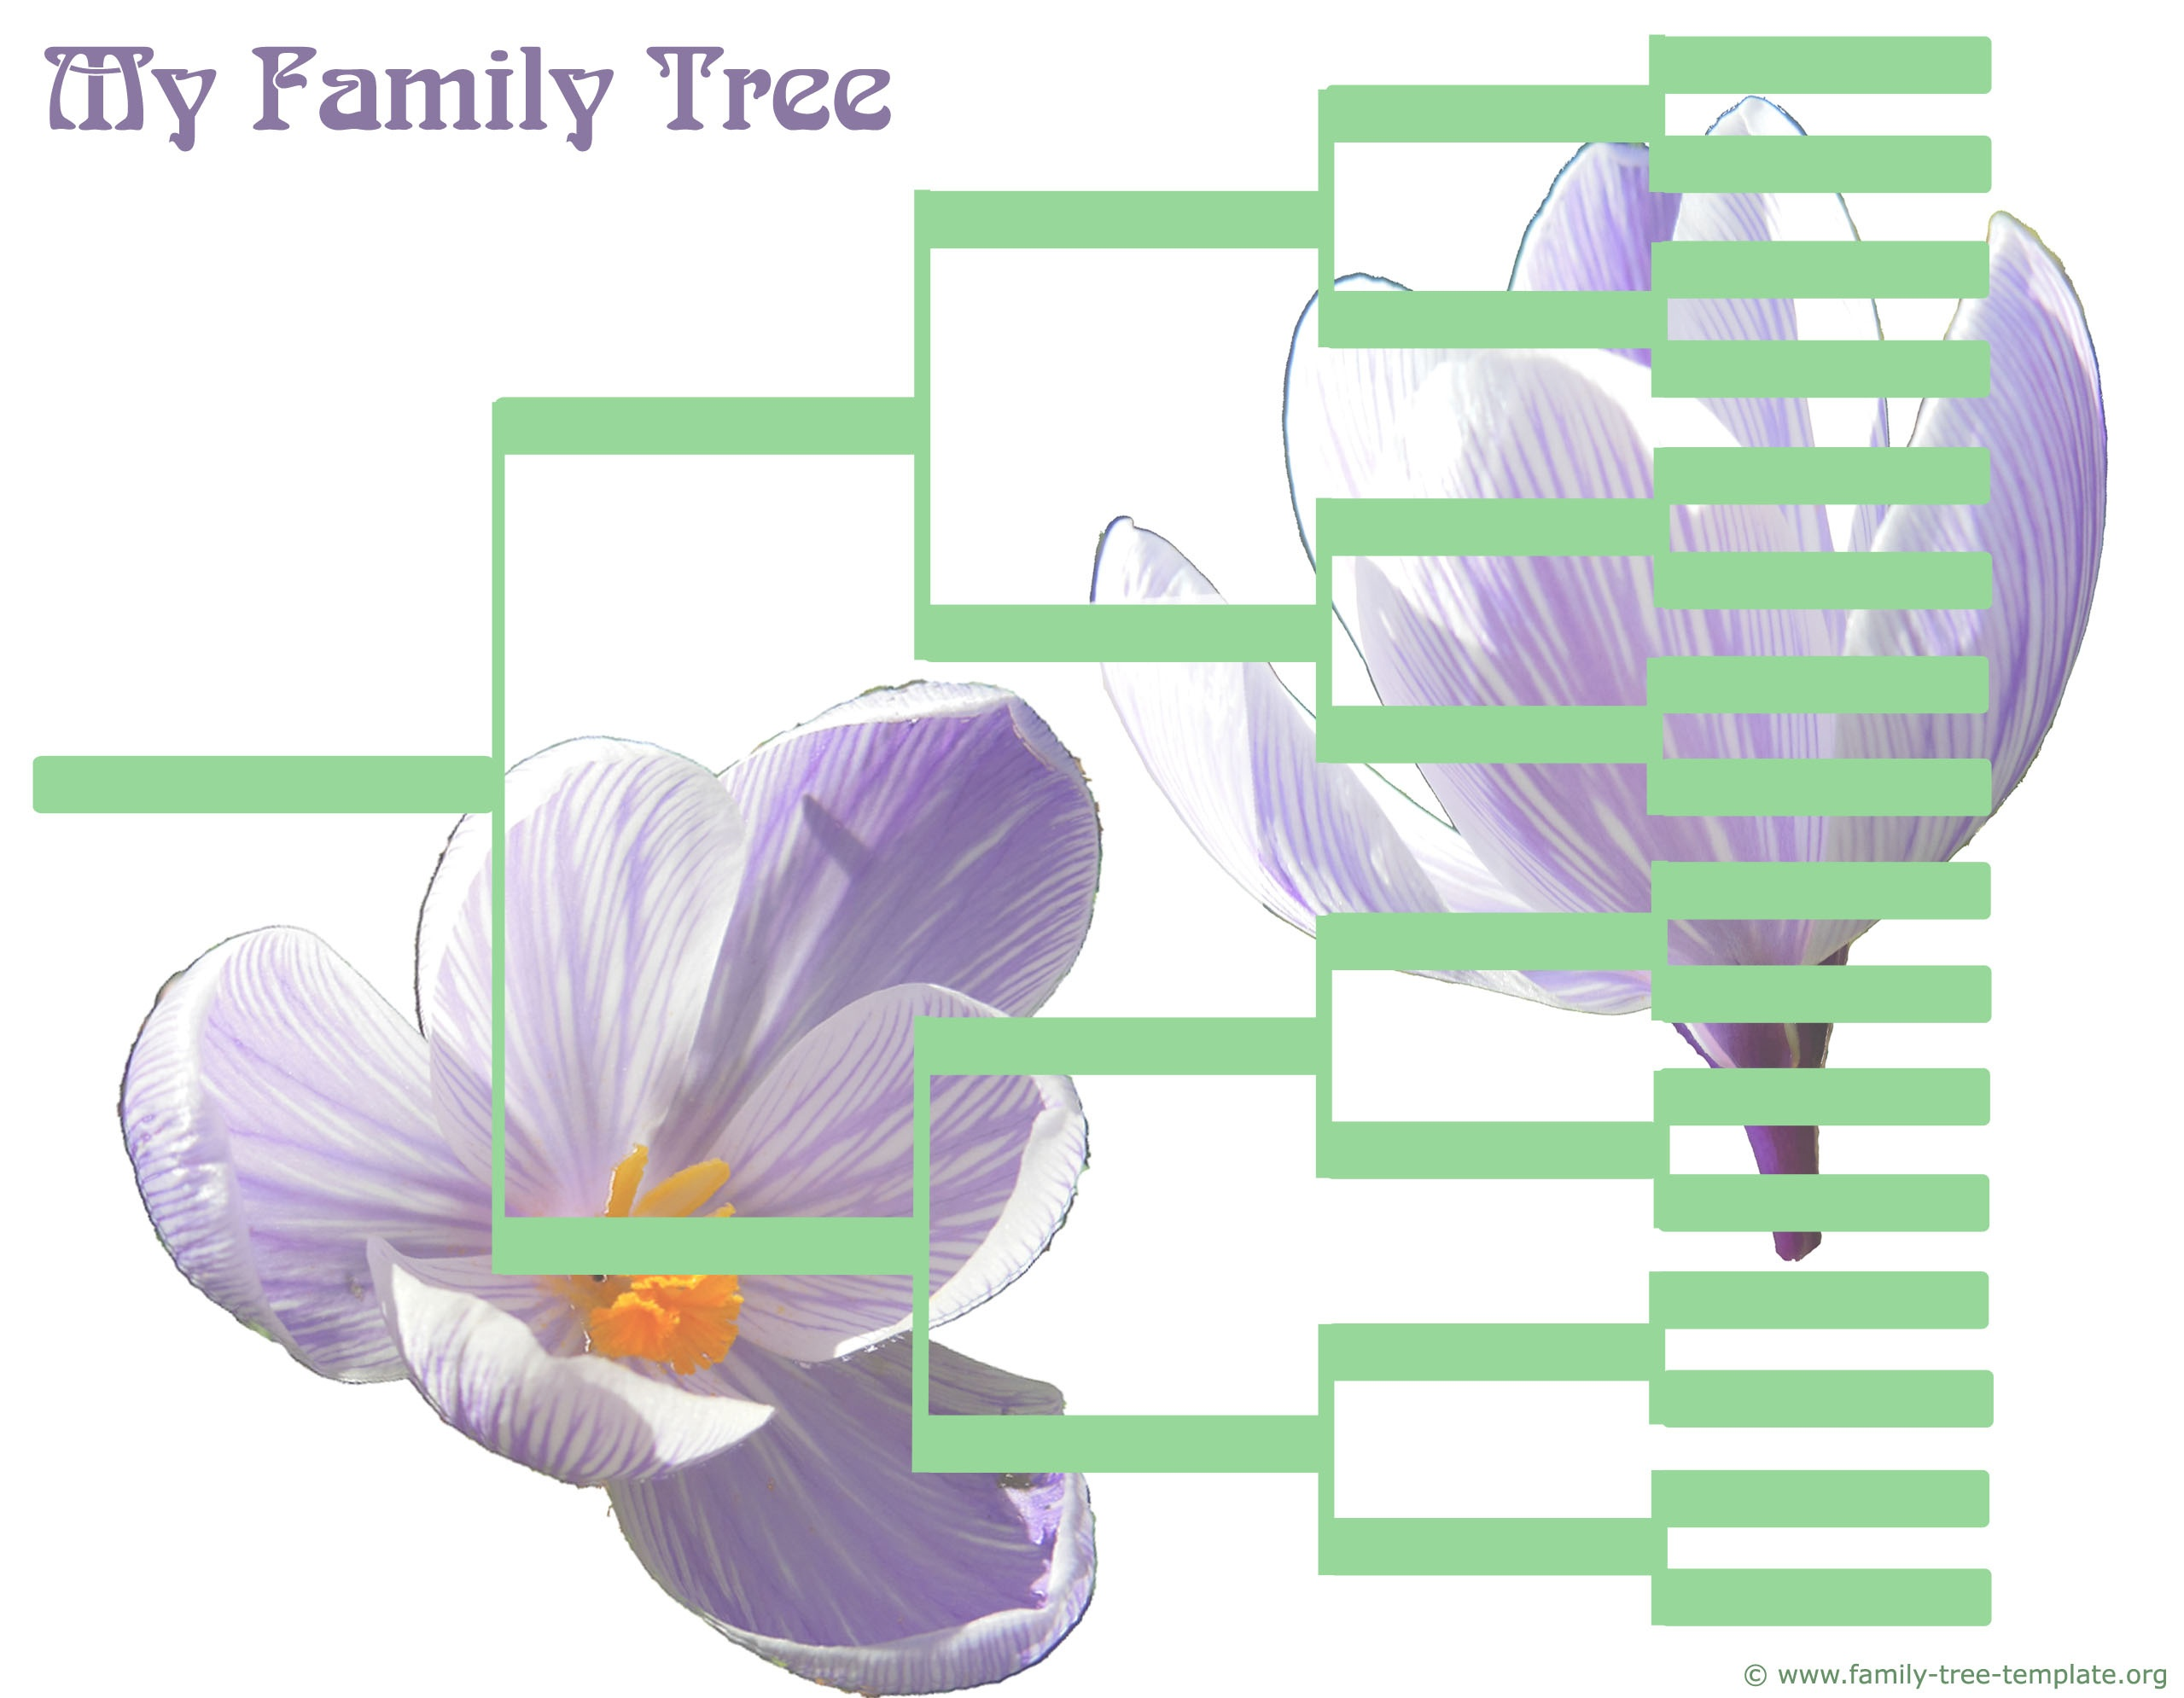 Family Tree Templates & Genealogy Clipart For Your Ancestry Map - Free Printable Family Tree Template 4 Generations